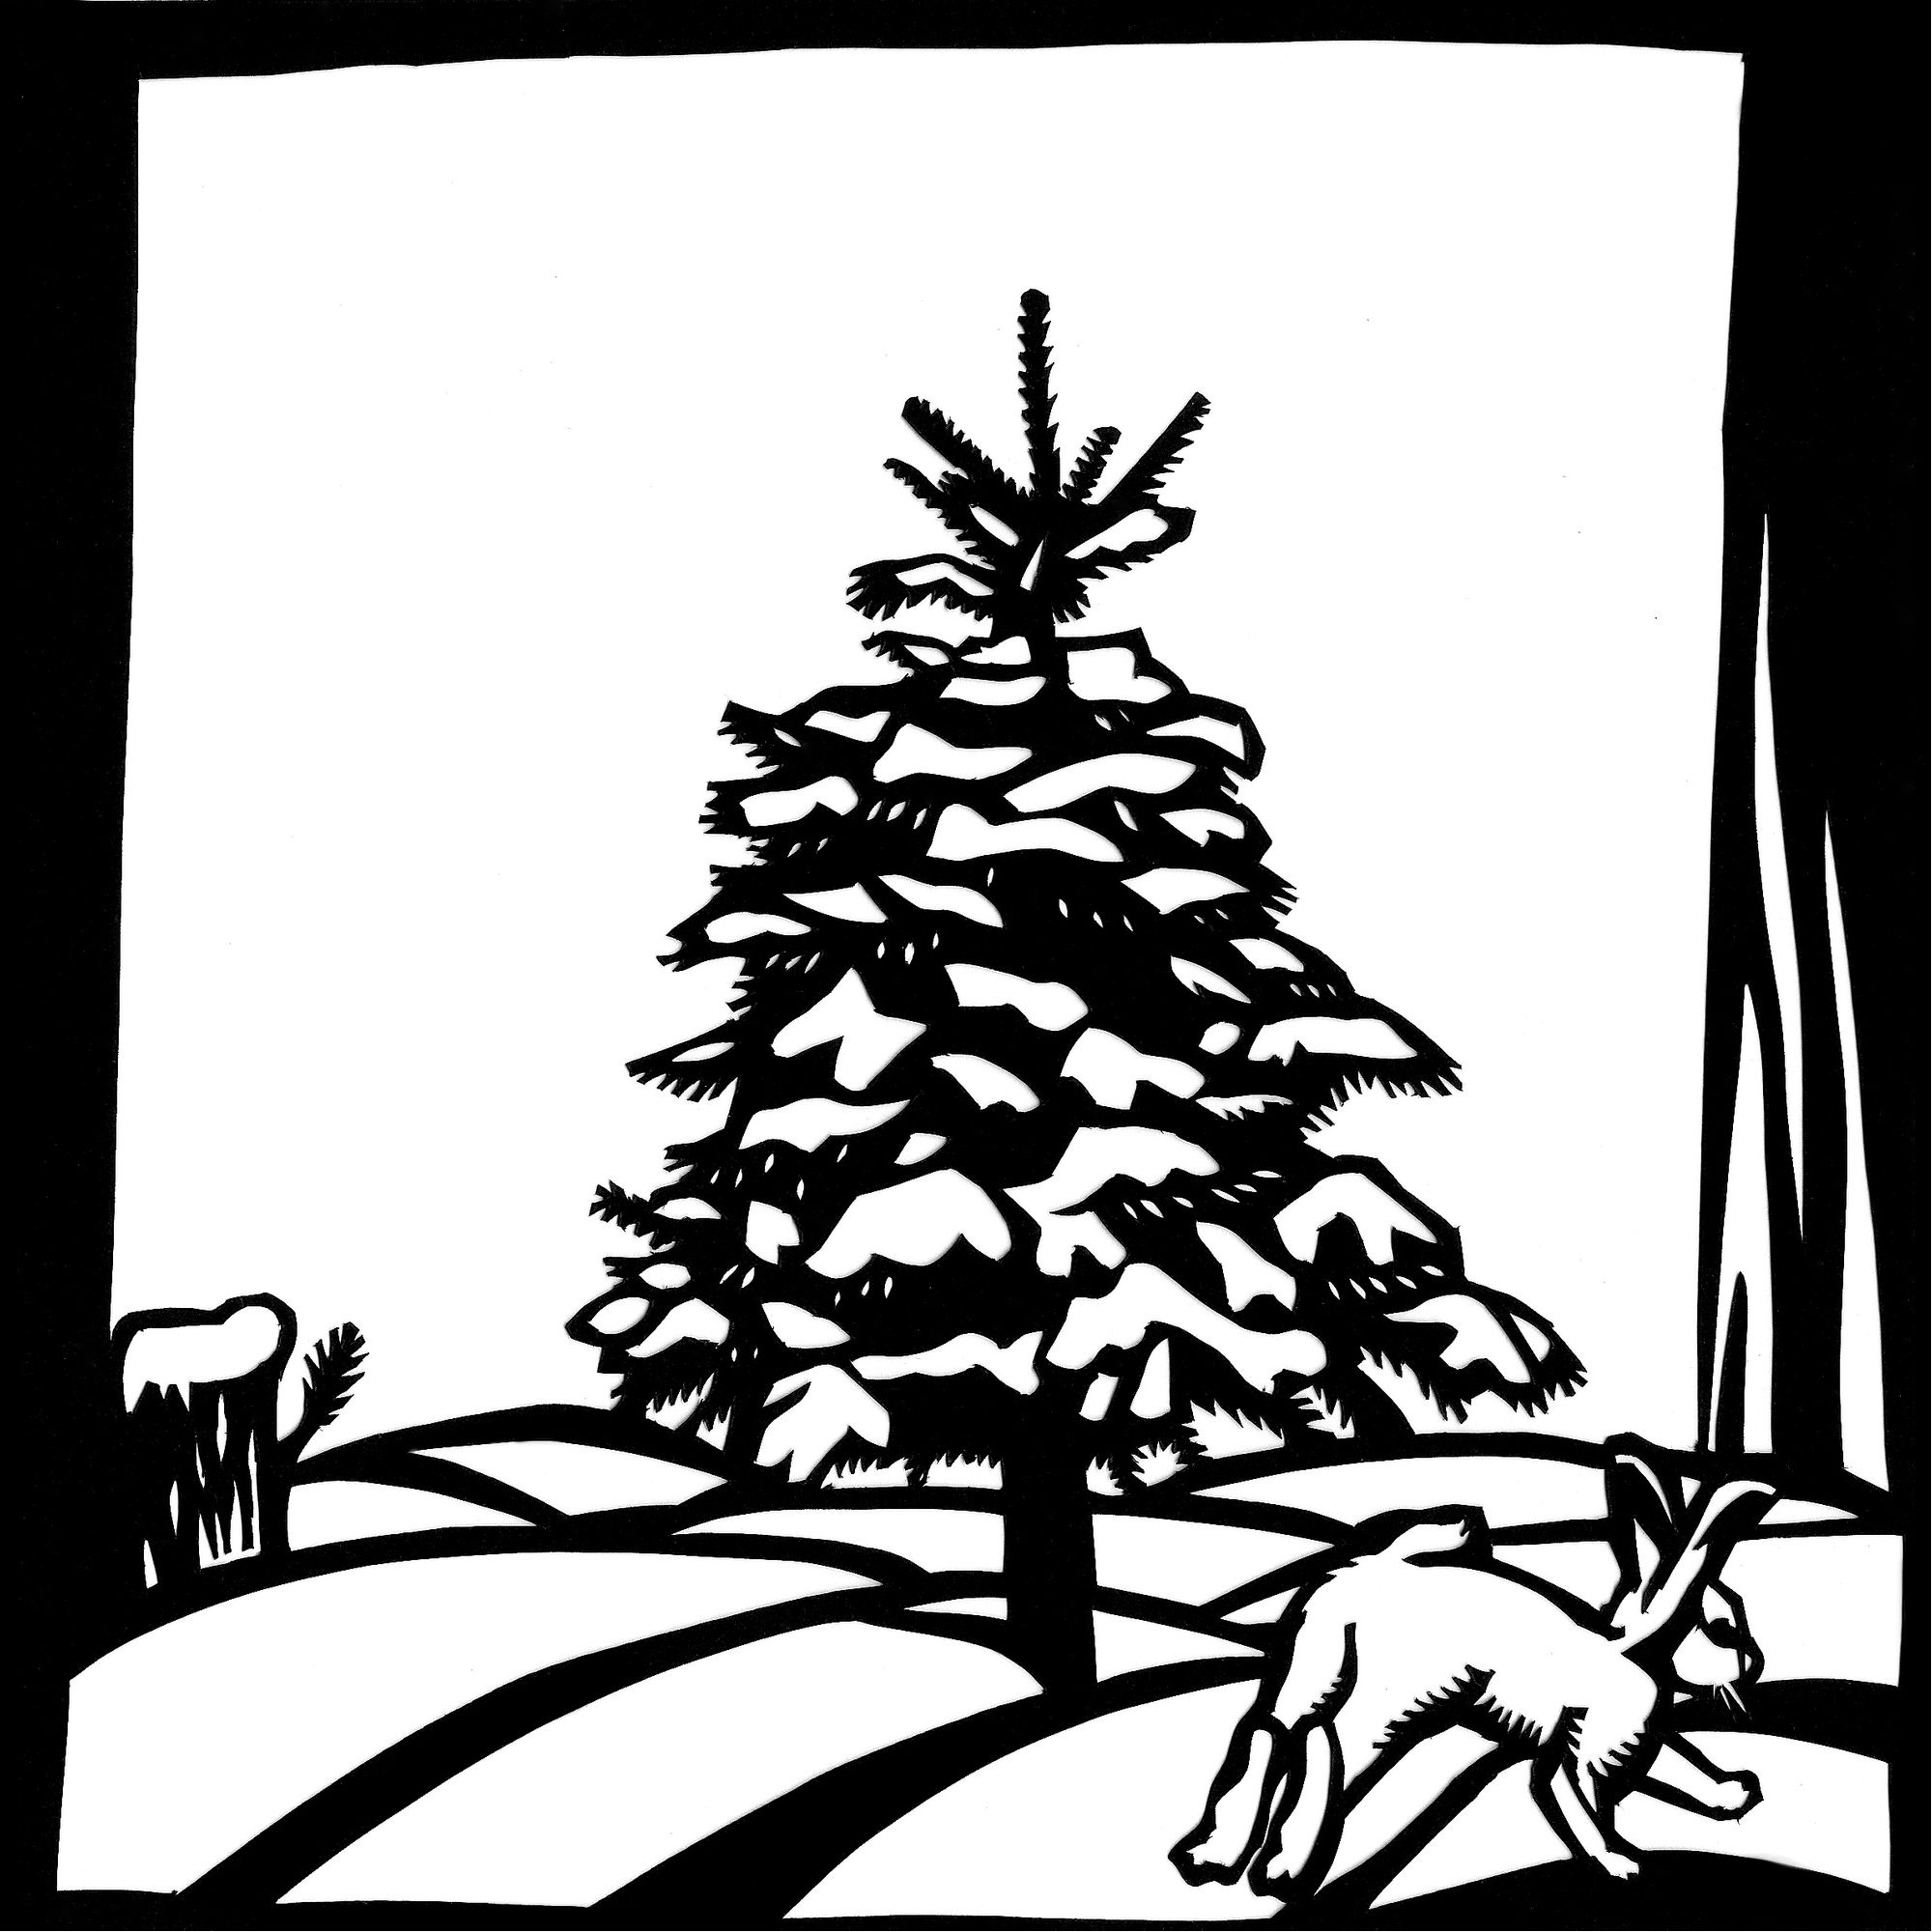 The Little Fir Tree- Cut paper illustration